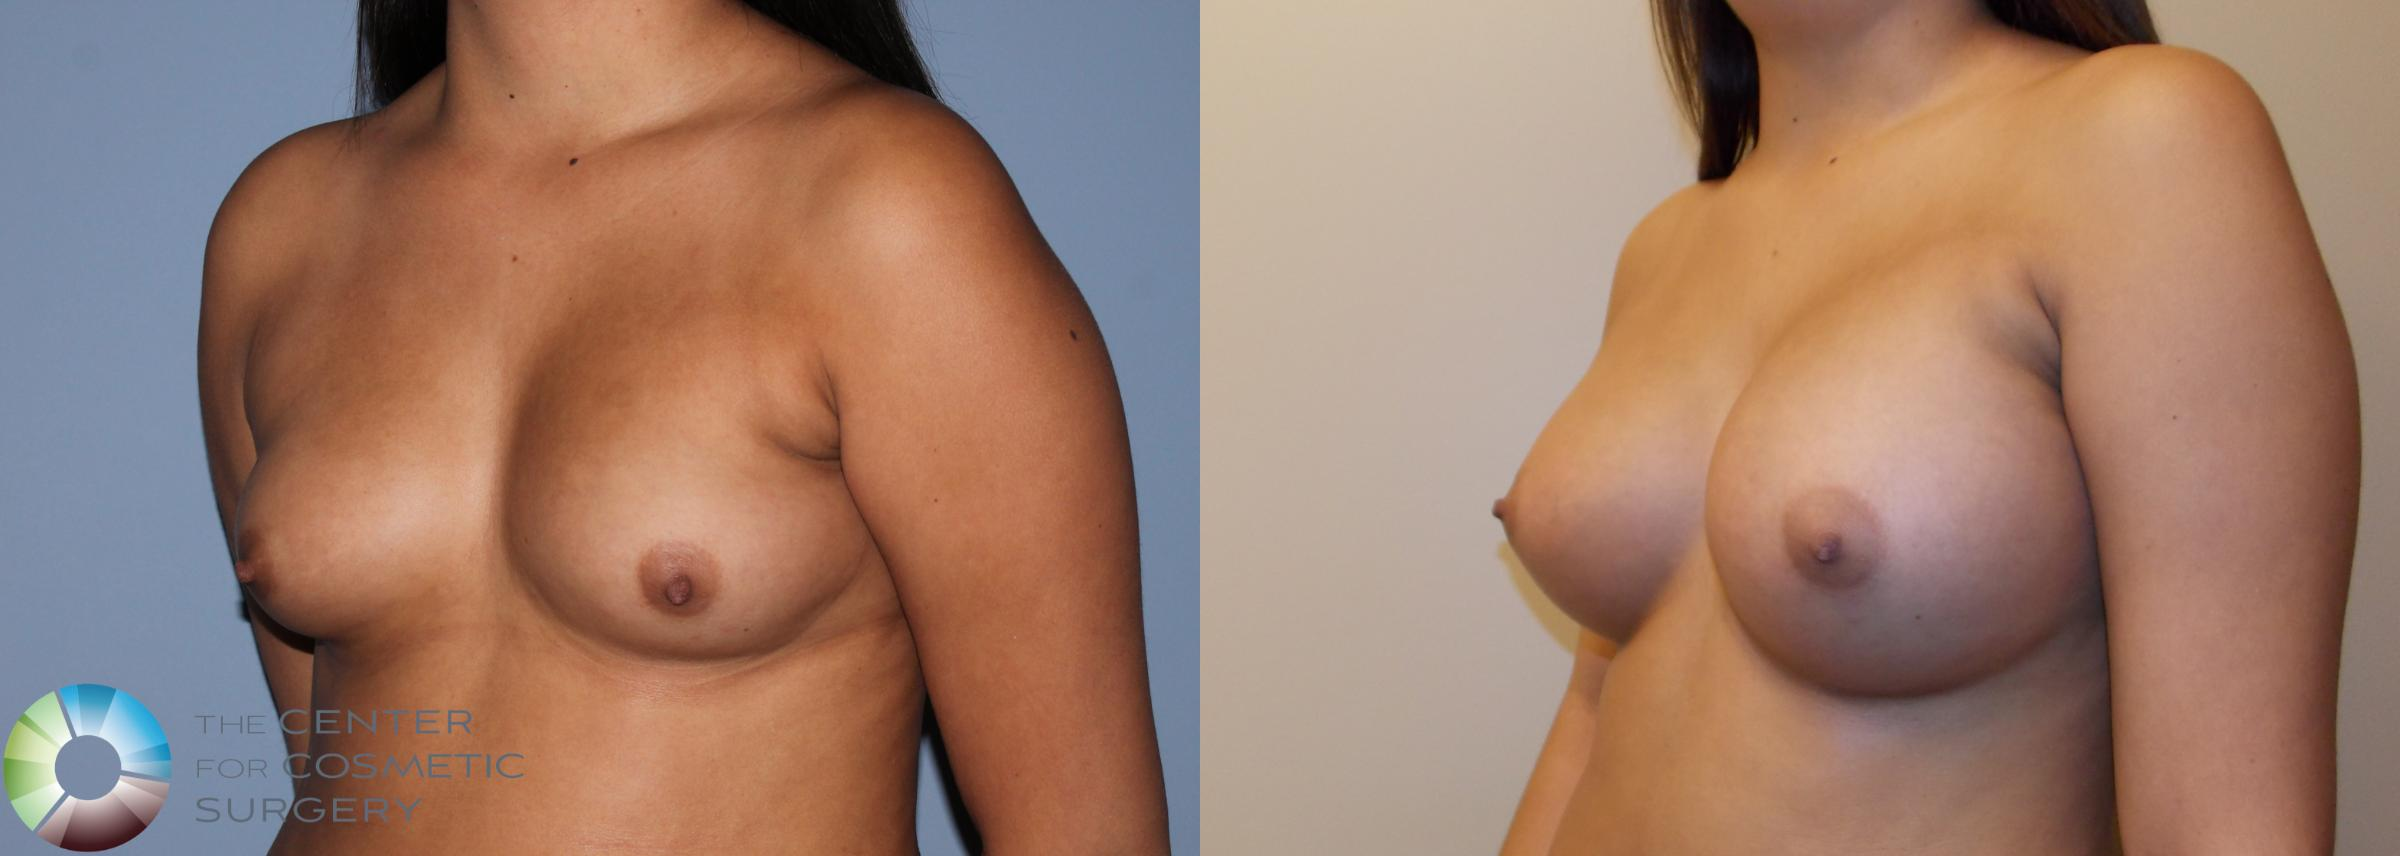 Breast Augmentation Case 754 Before & After View #2 | Golden, CO | The Center for Cosmetic Surgery